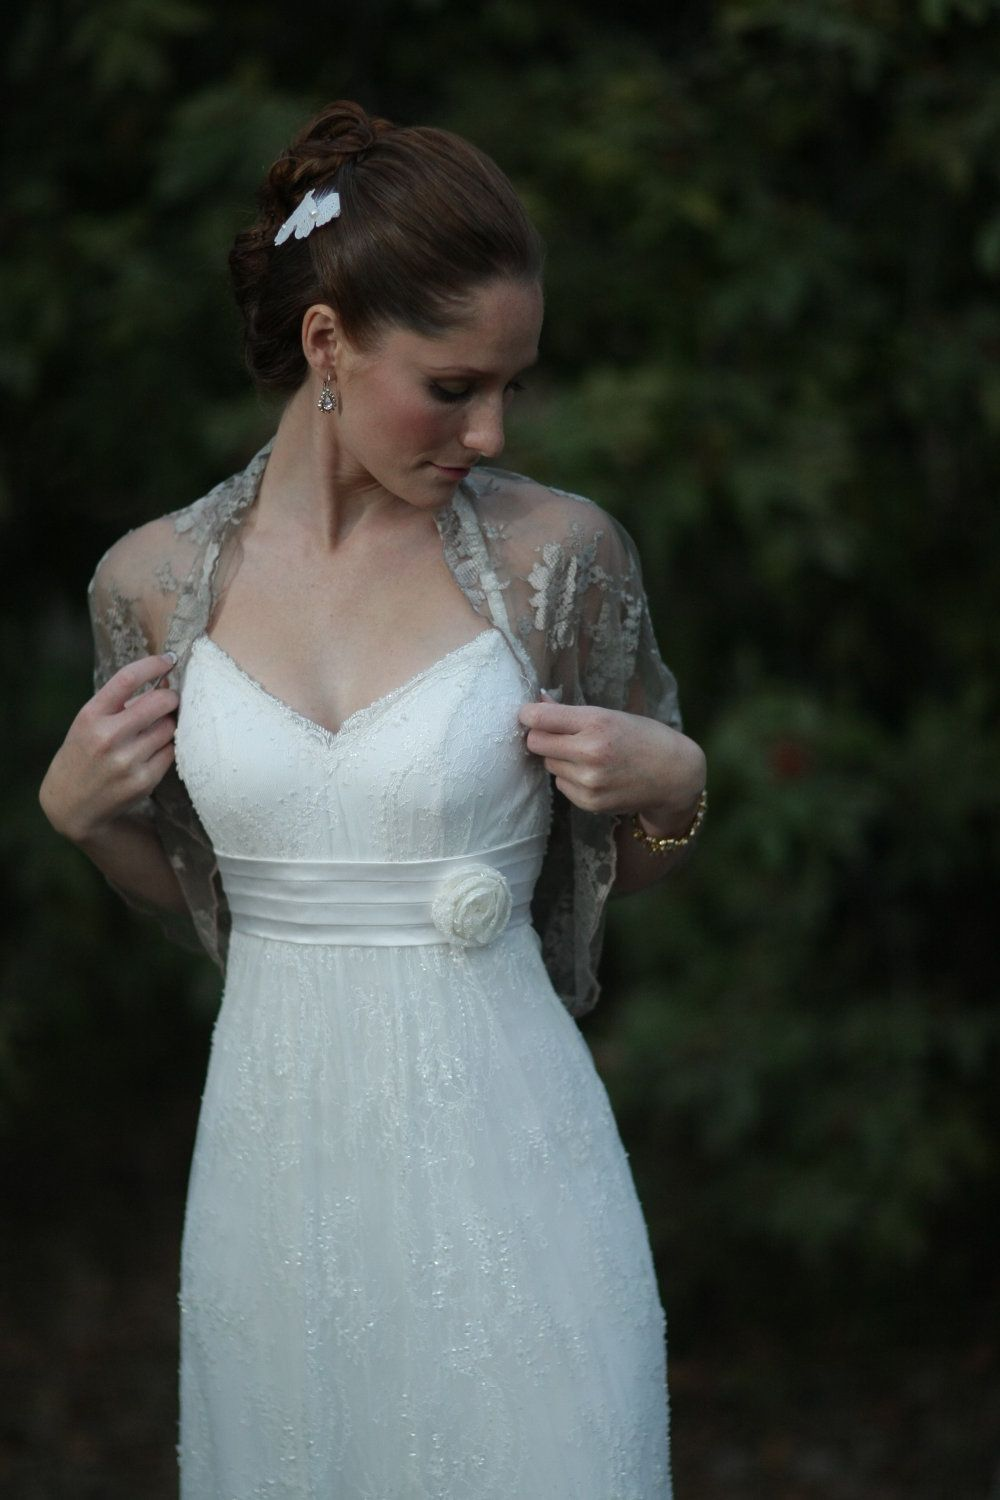 Rustic lace wedding dress  Bridal Shrug Taupe color metallic fabric Rustic wedding accessory